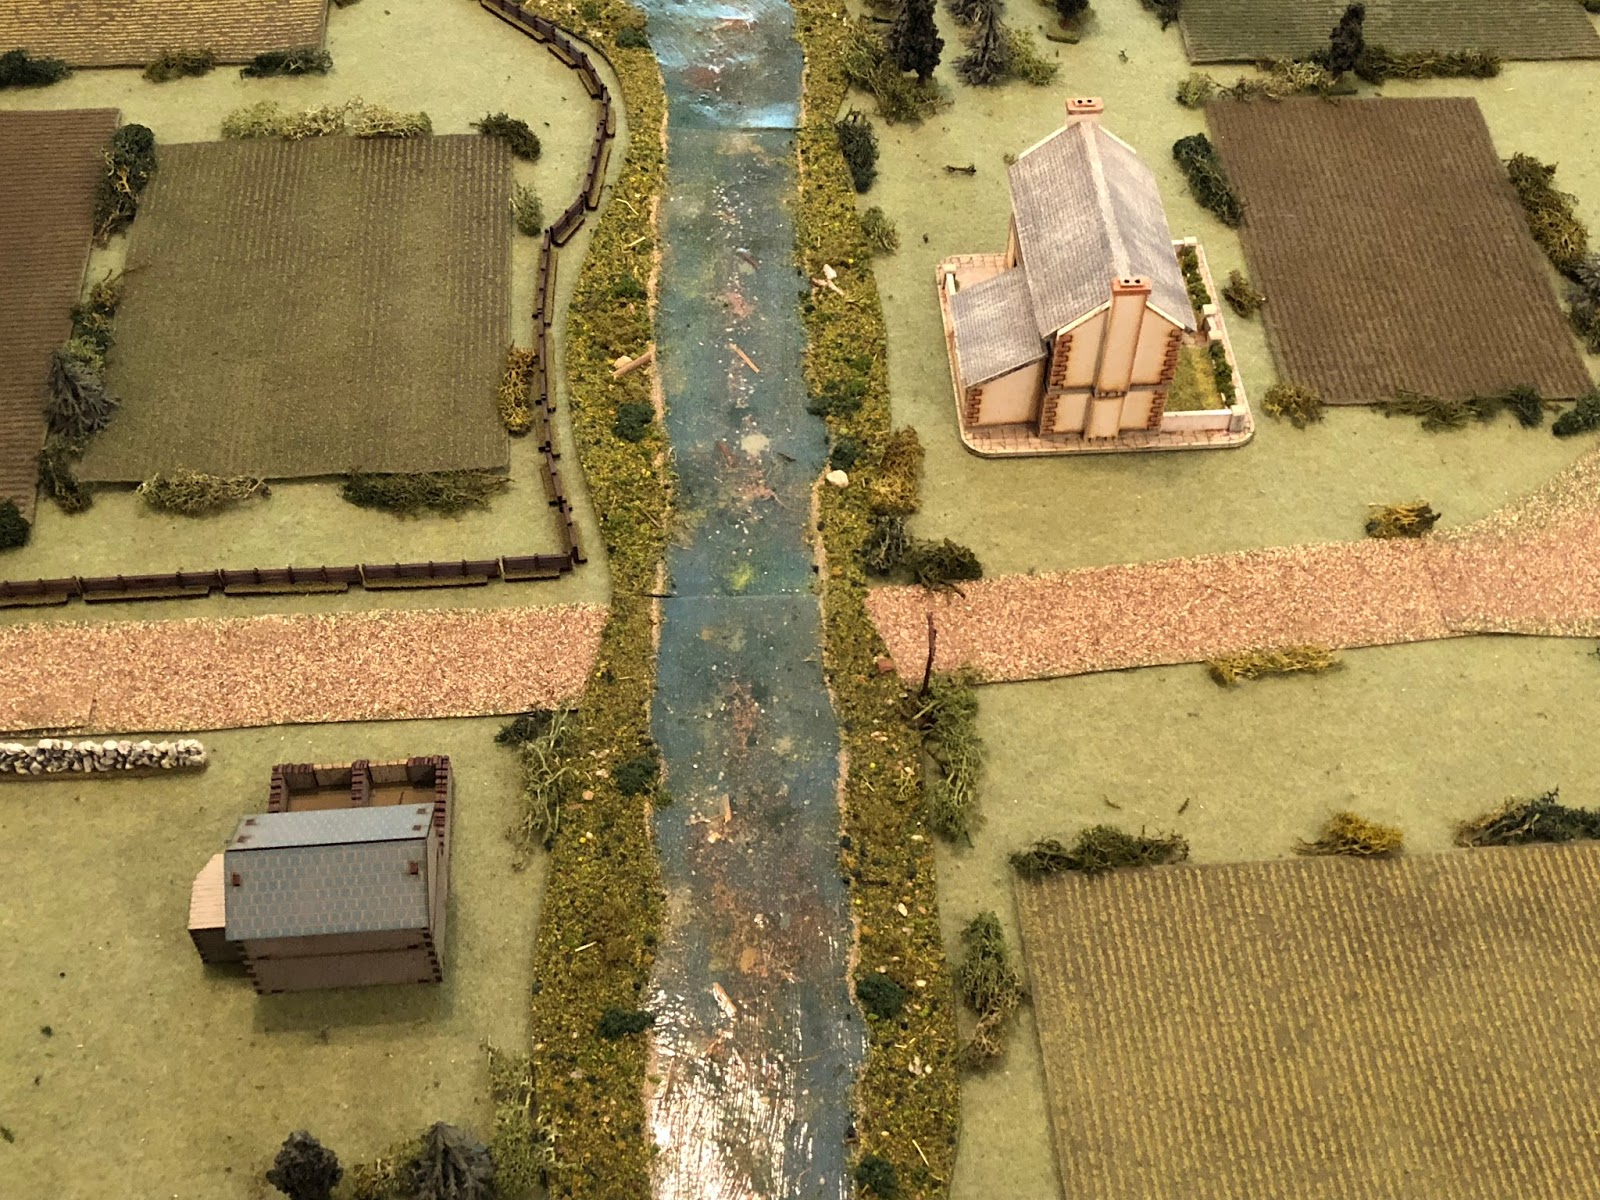 A close up of the objective, the ford (center), with the tollkeeper's home at bottom left and Mlle Chevelle's home at top right.  You get a good look at some of the cabbage fields and the wooden fence running on the north side of the main road.